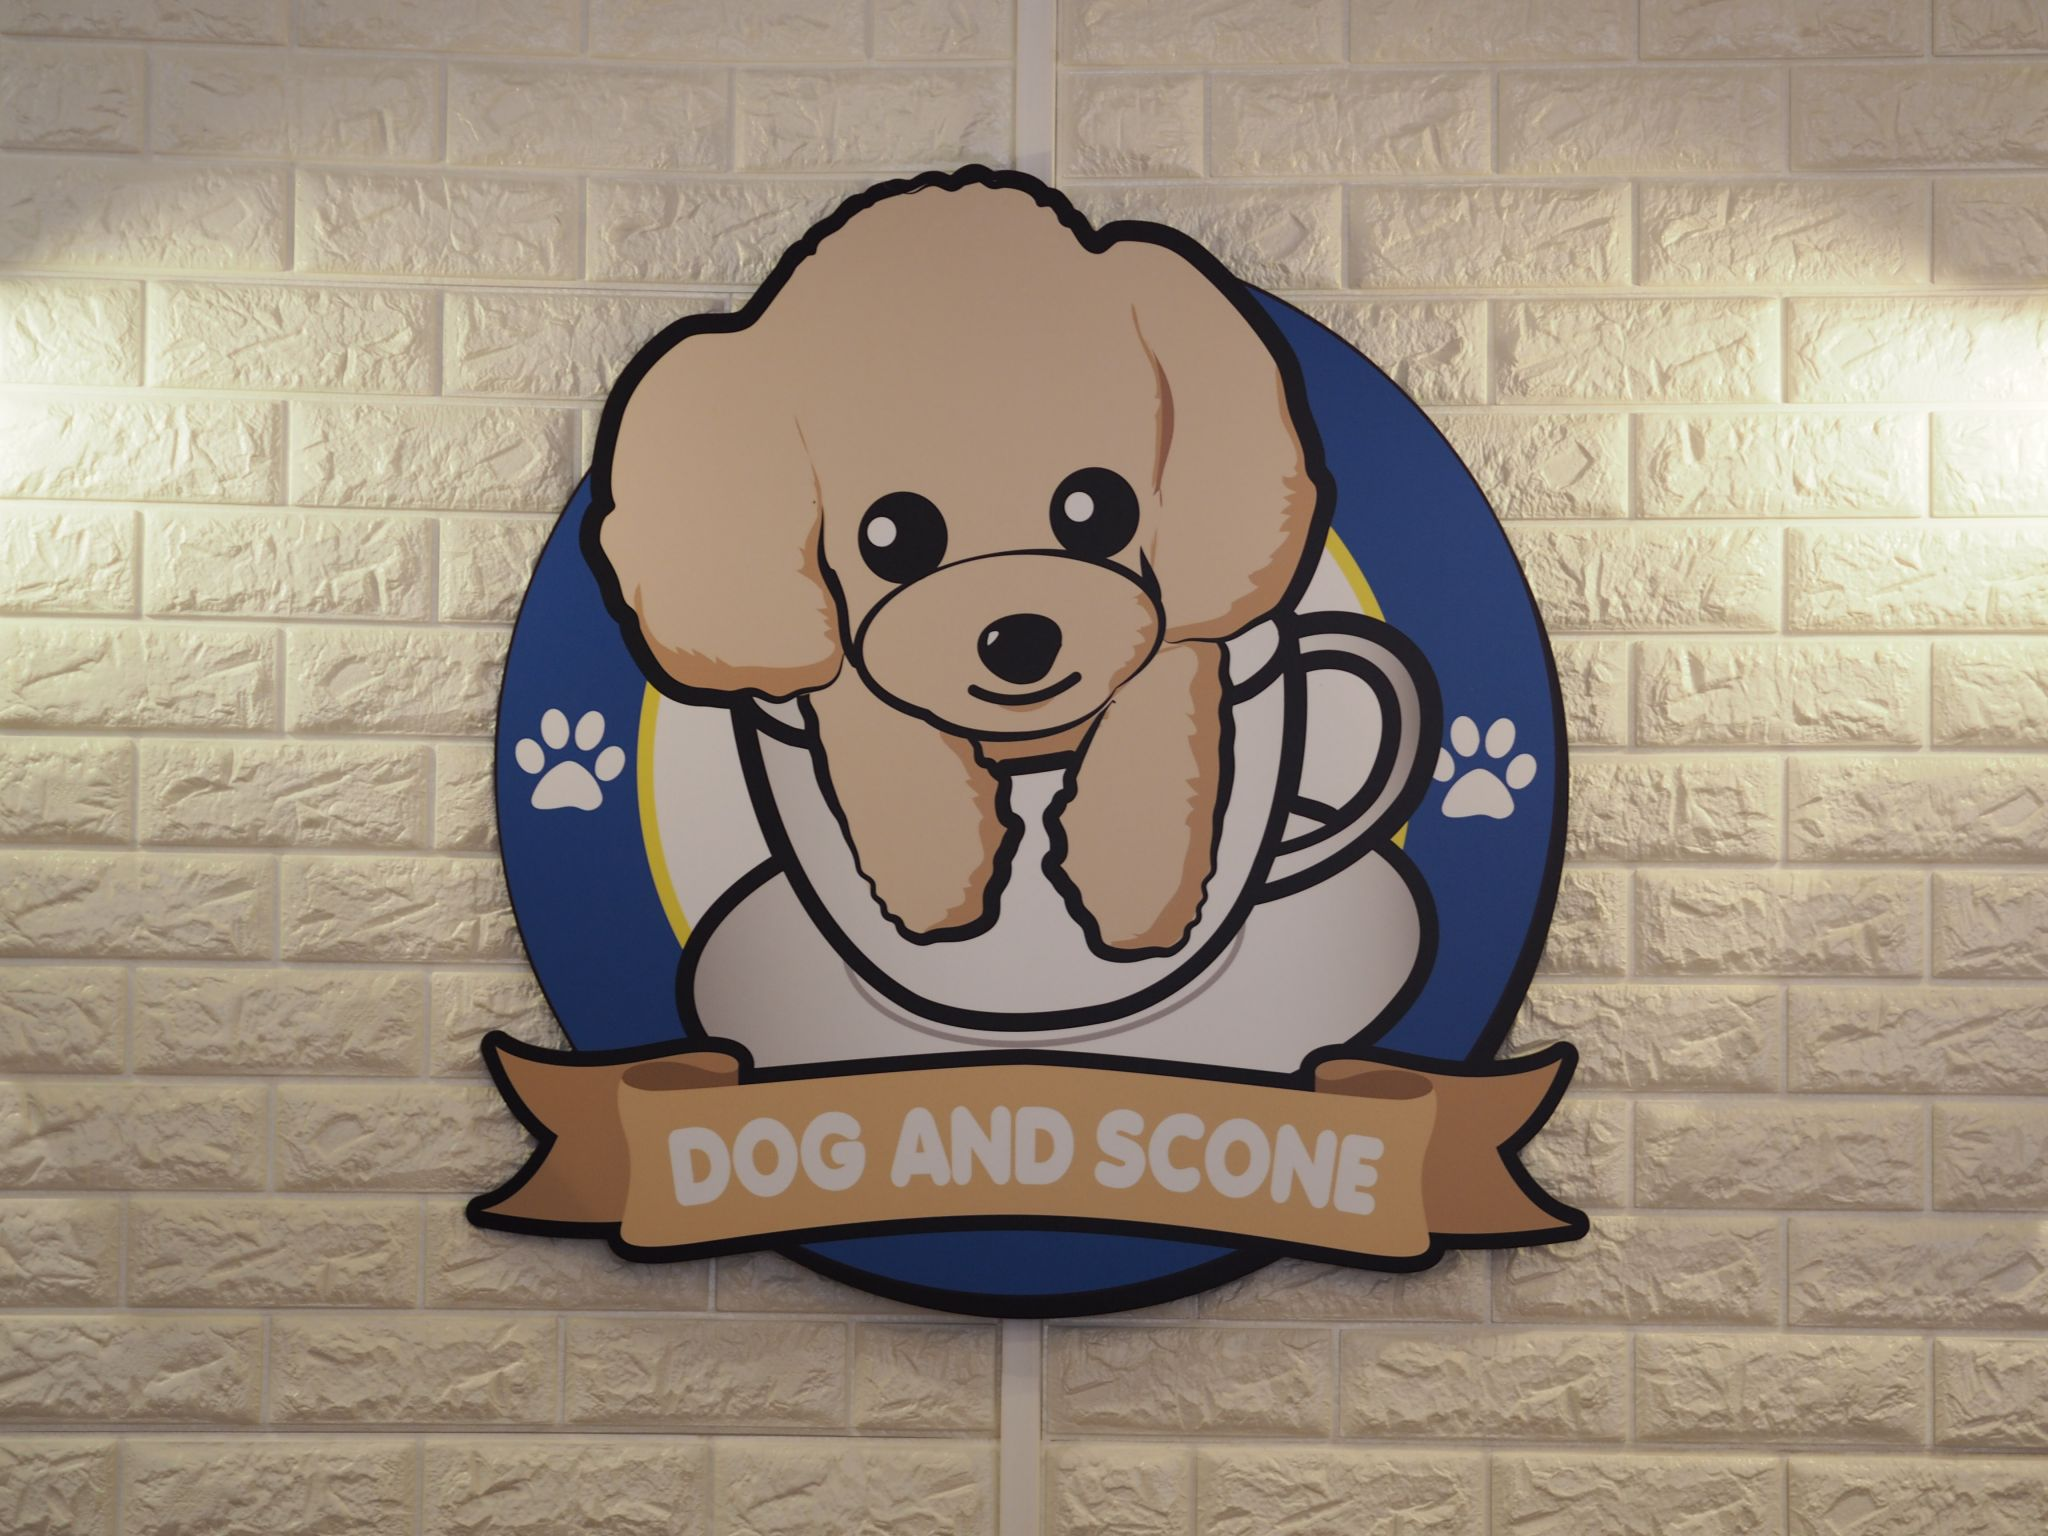 Dog and Scone